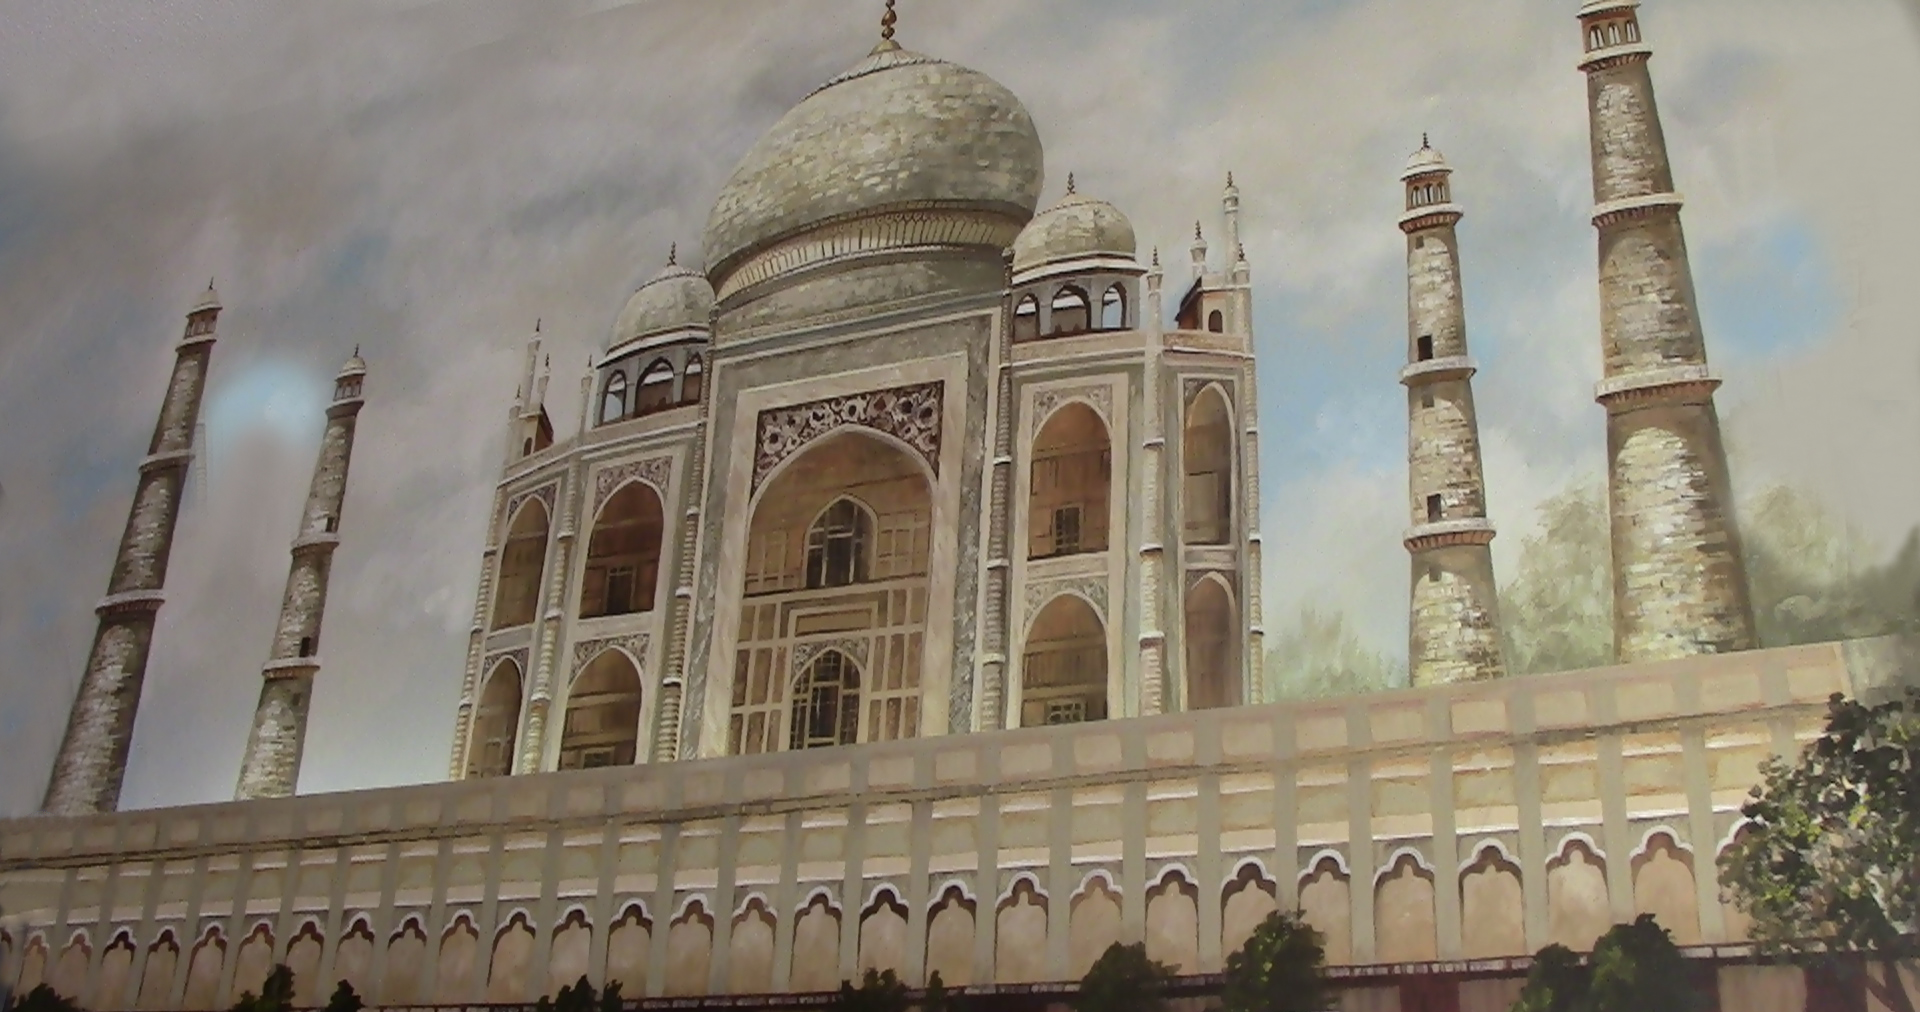 Taj Mahal shows cultural traditions about death and burial, seattle funeral, religious funerals